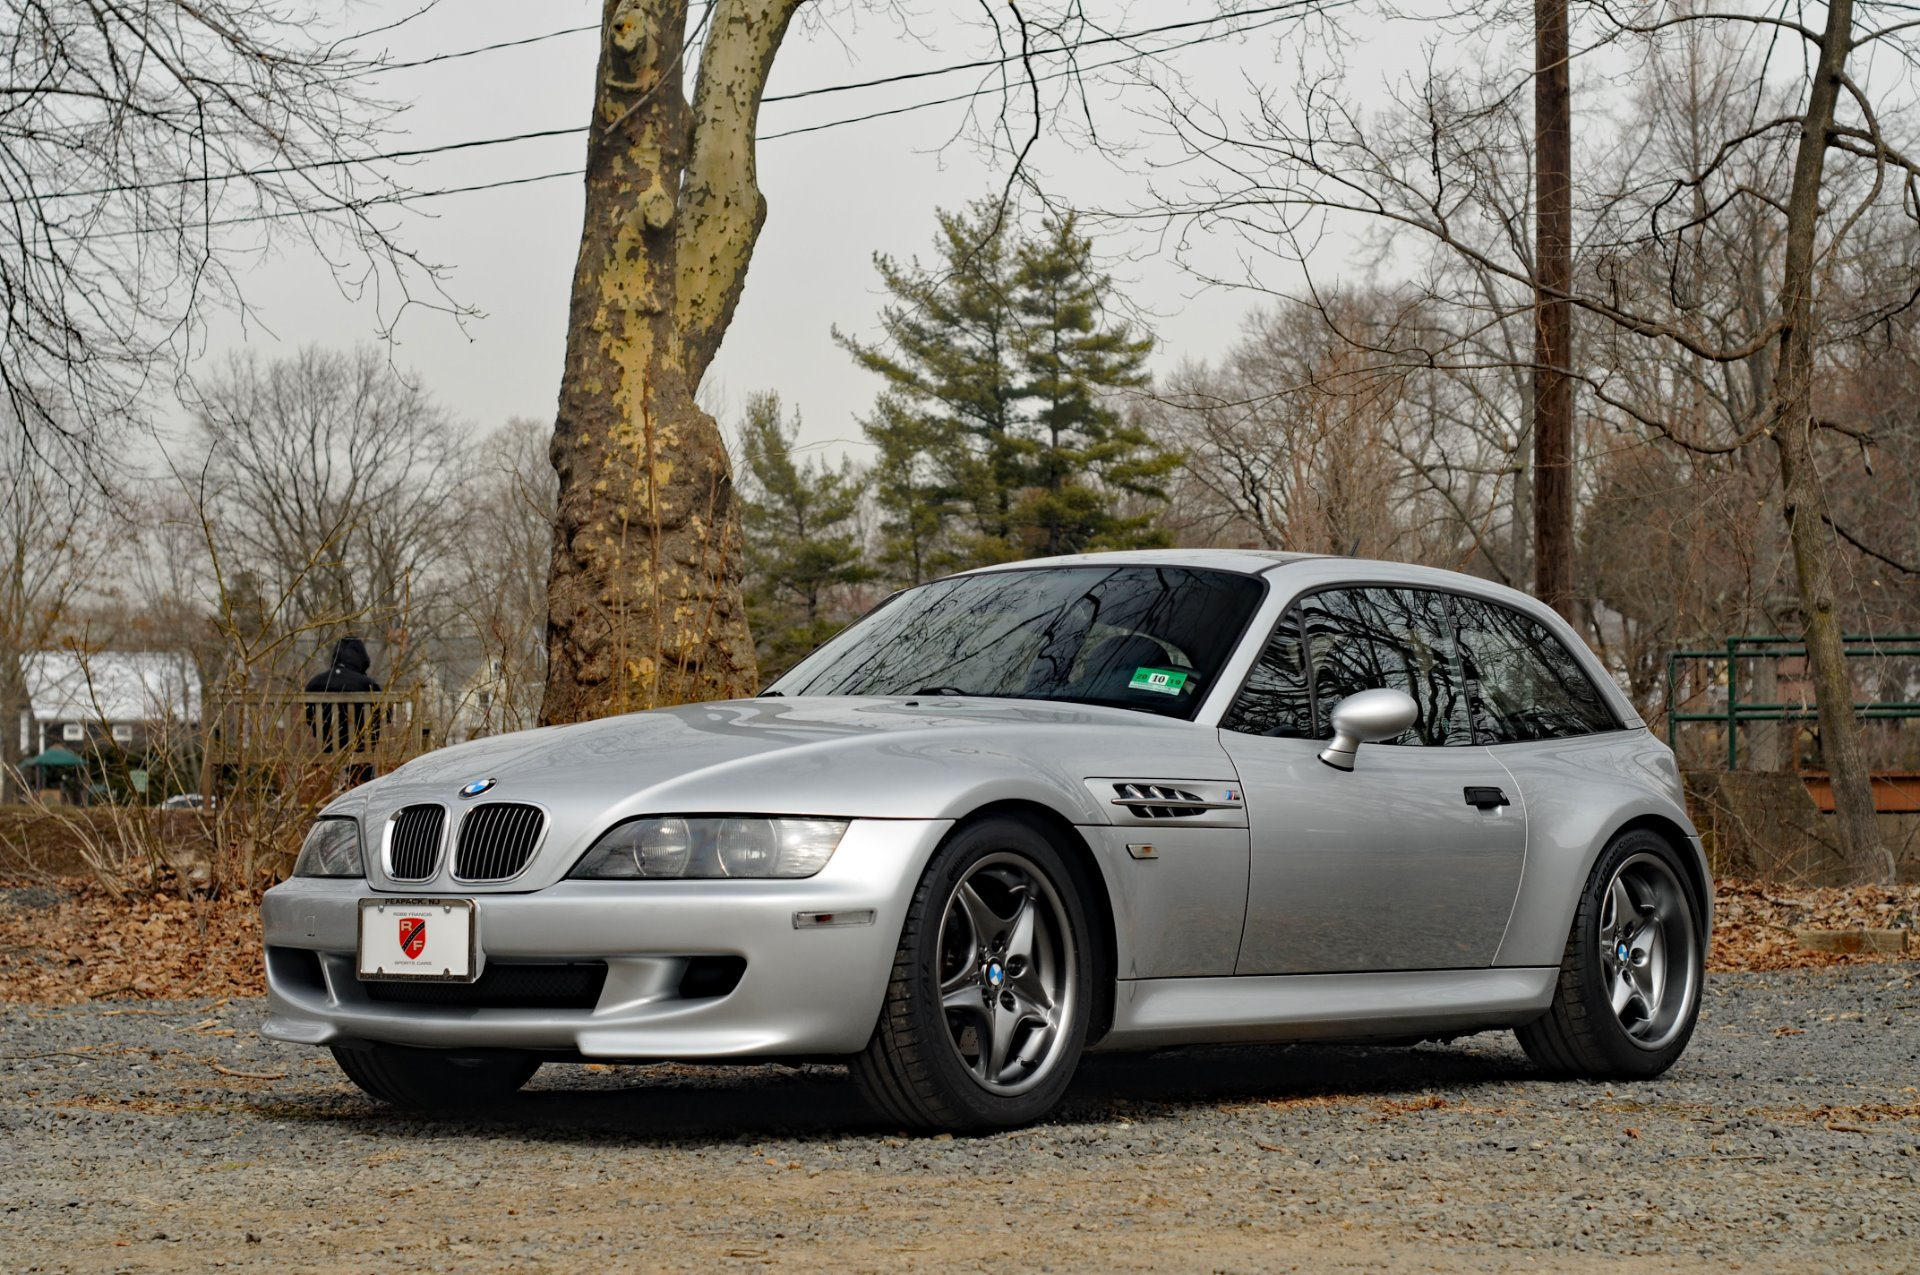 used sale c htm park bmw stock for near edgewater